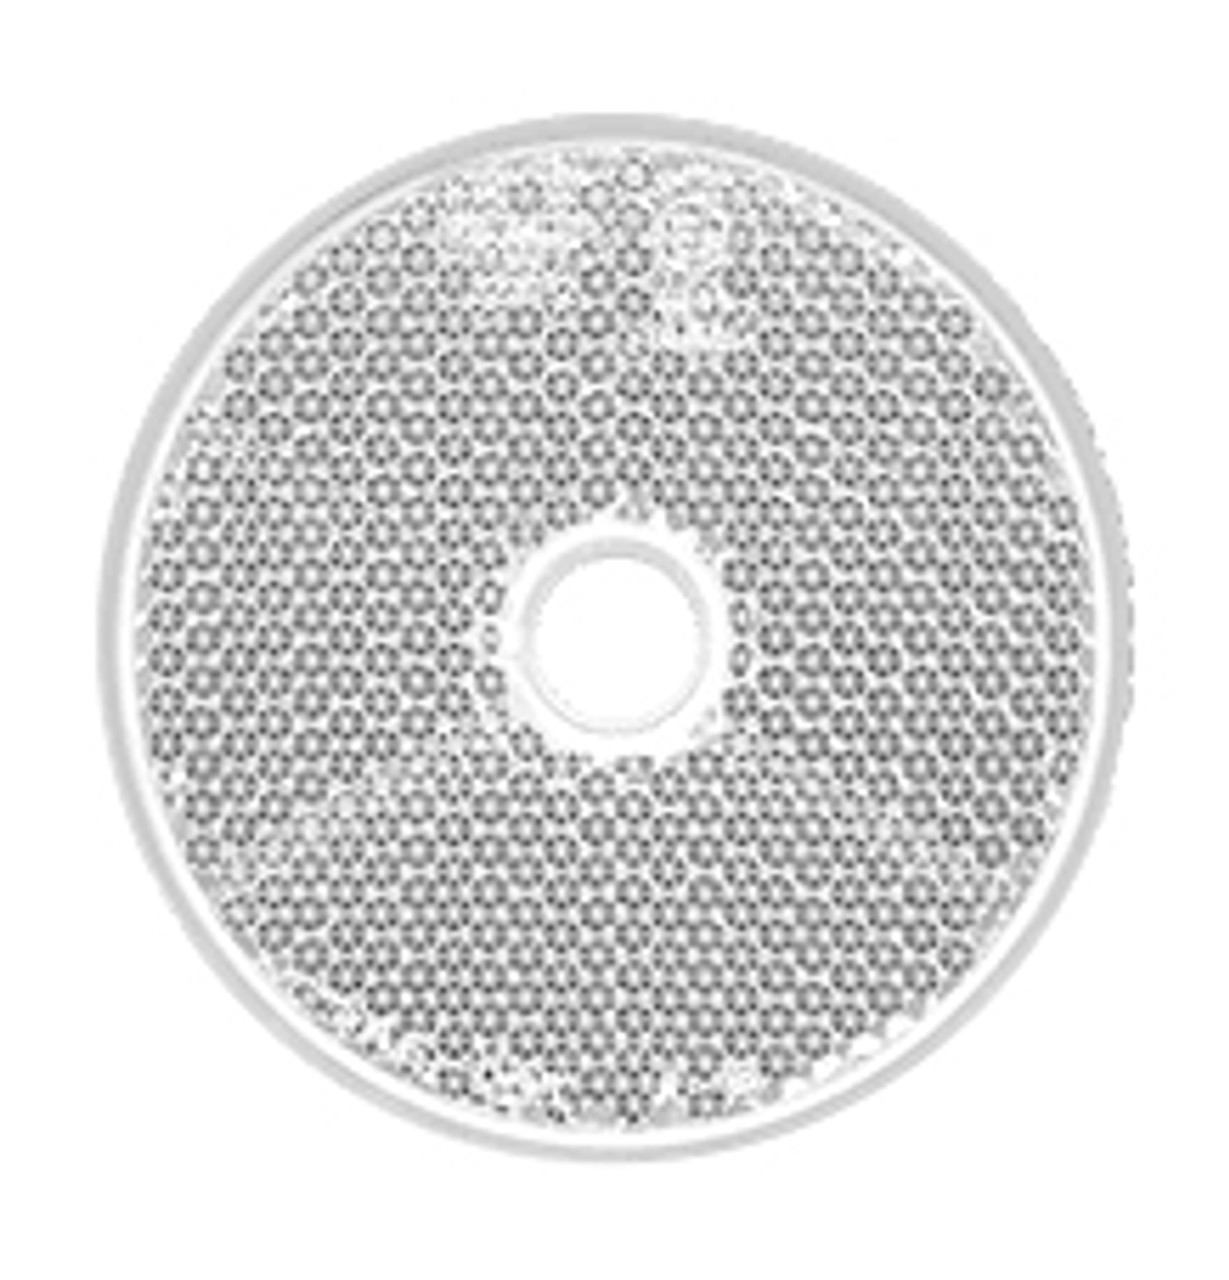 66W - Round White Reflex Reflector. Low Profile Design. Screw Mount. Premium Quality. ECE Approved. Autolamp.  Ultimate LED.